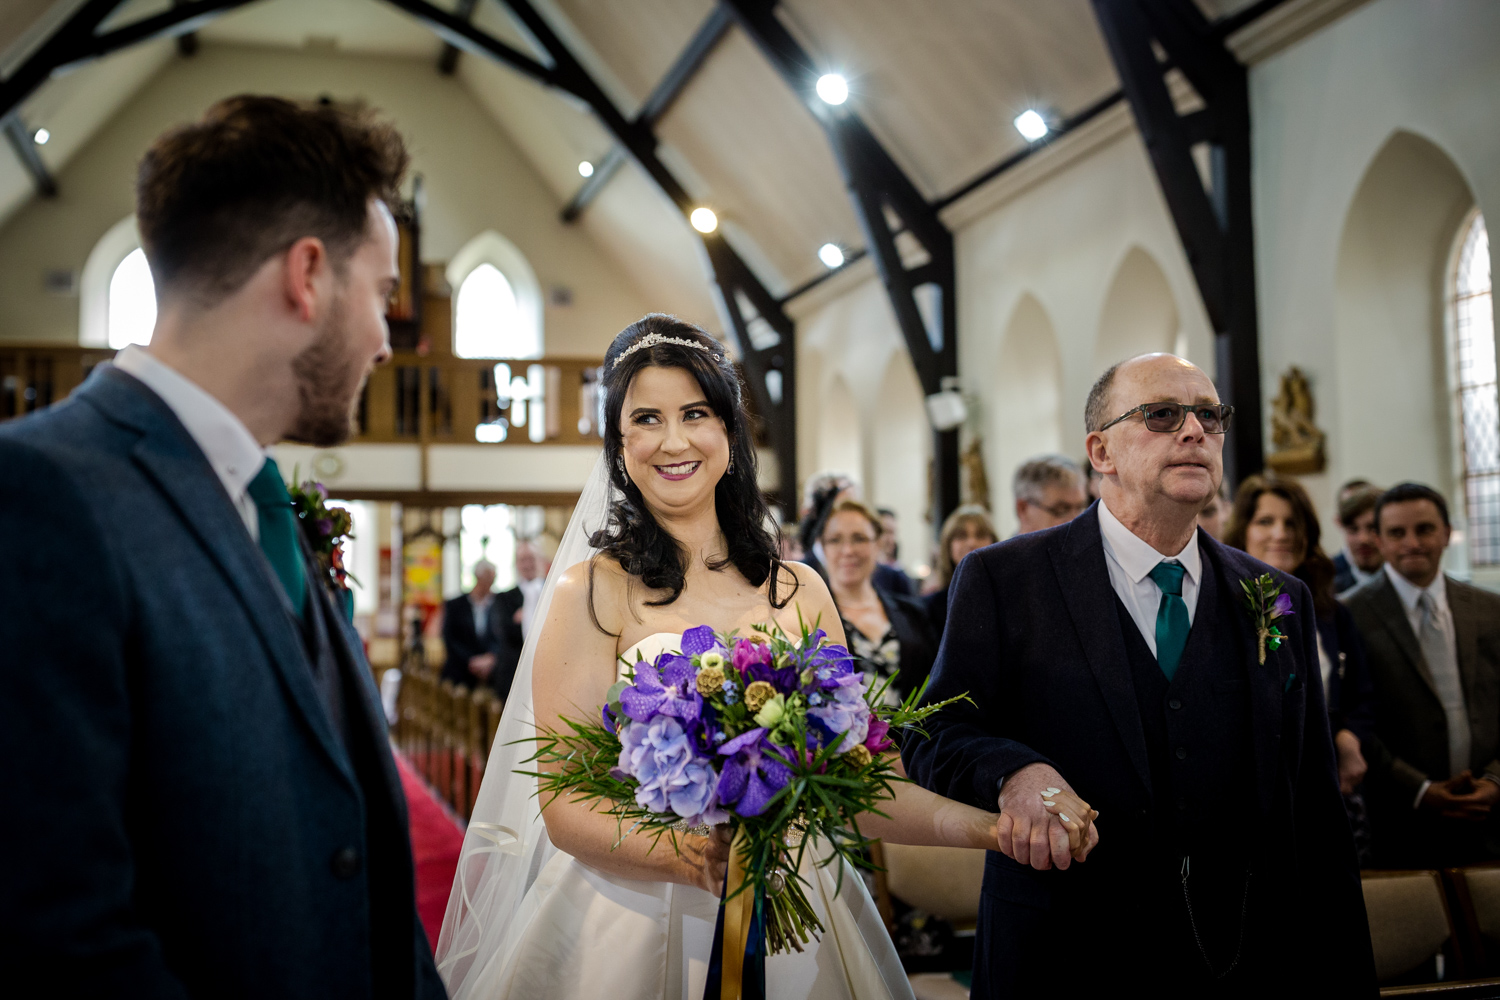 The bride sees her husband for the first time